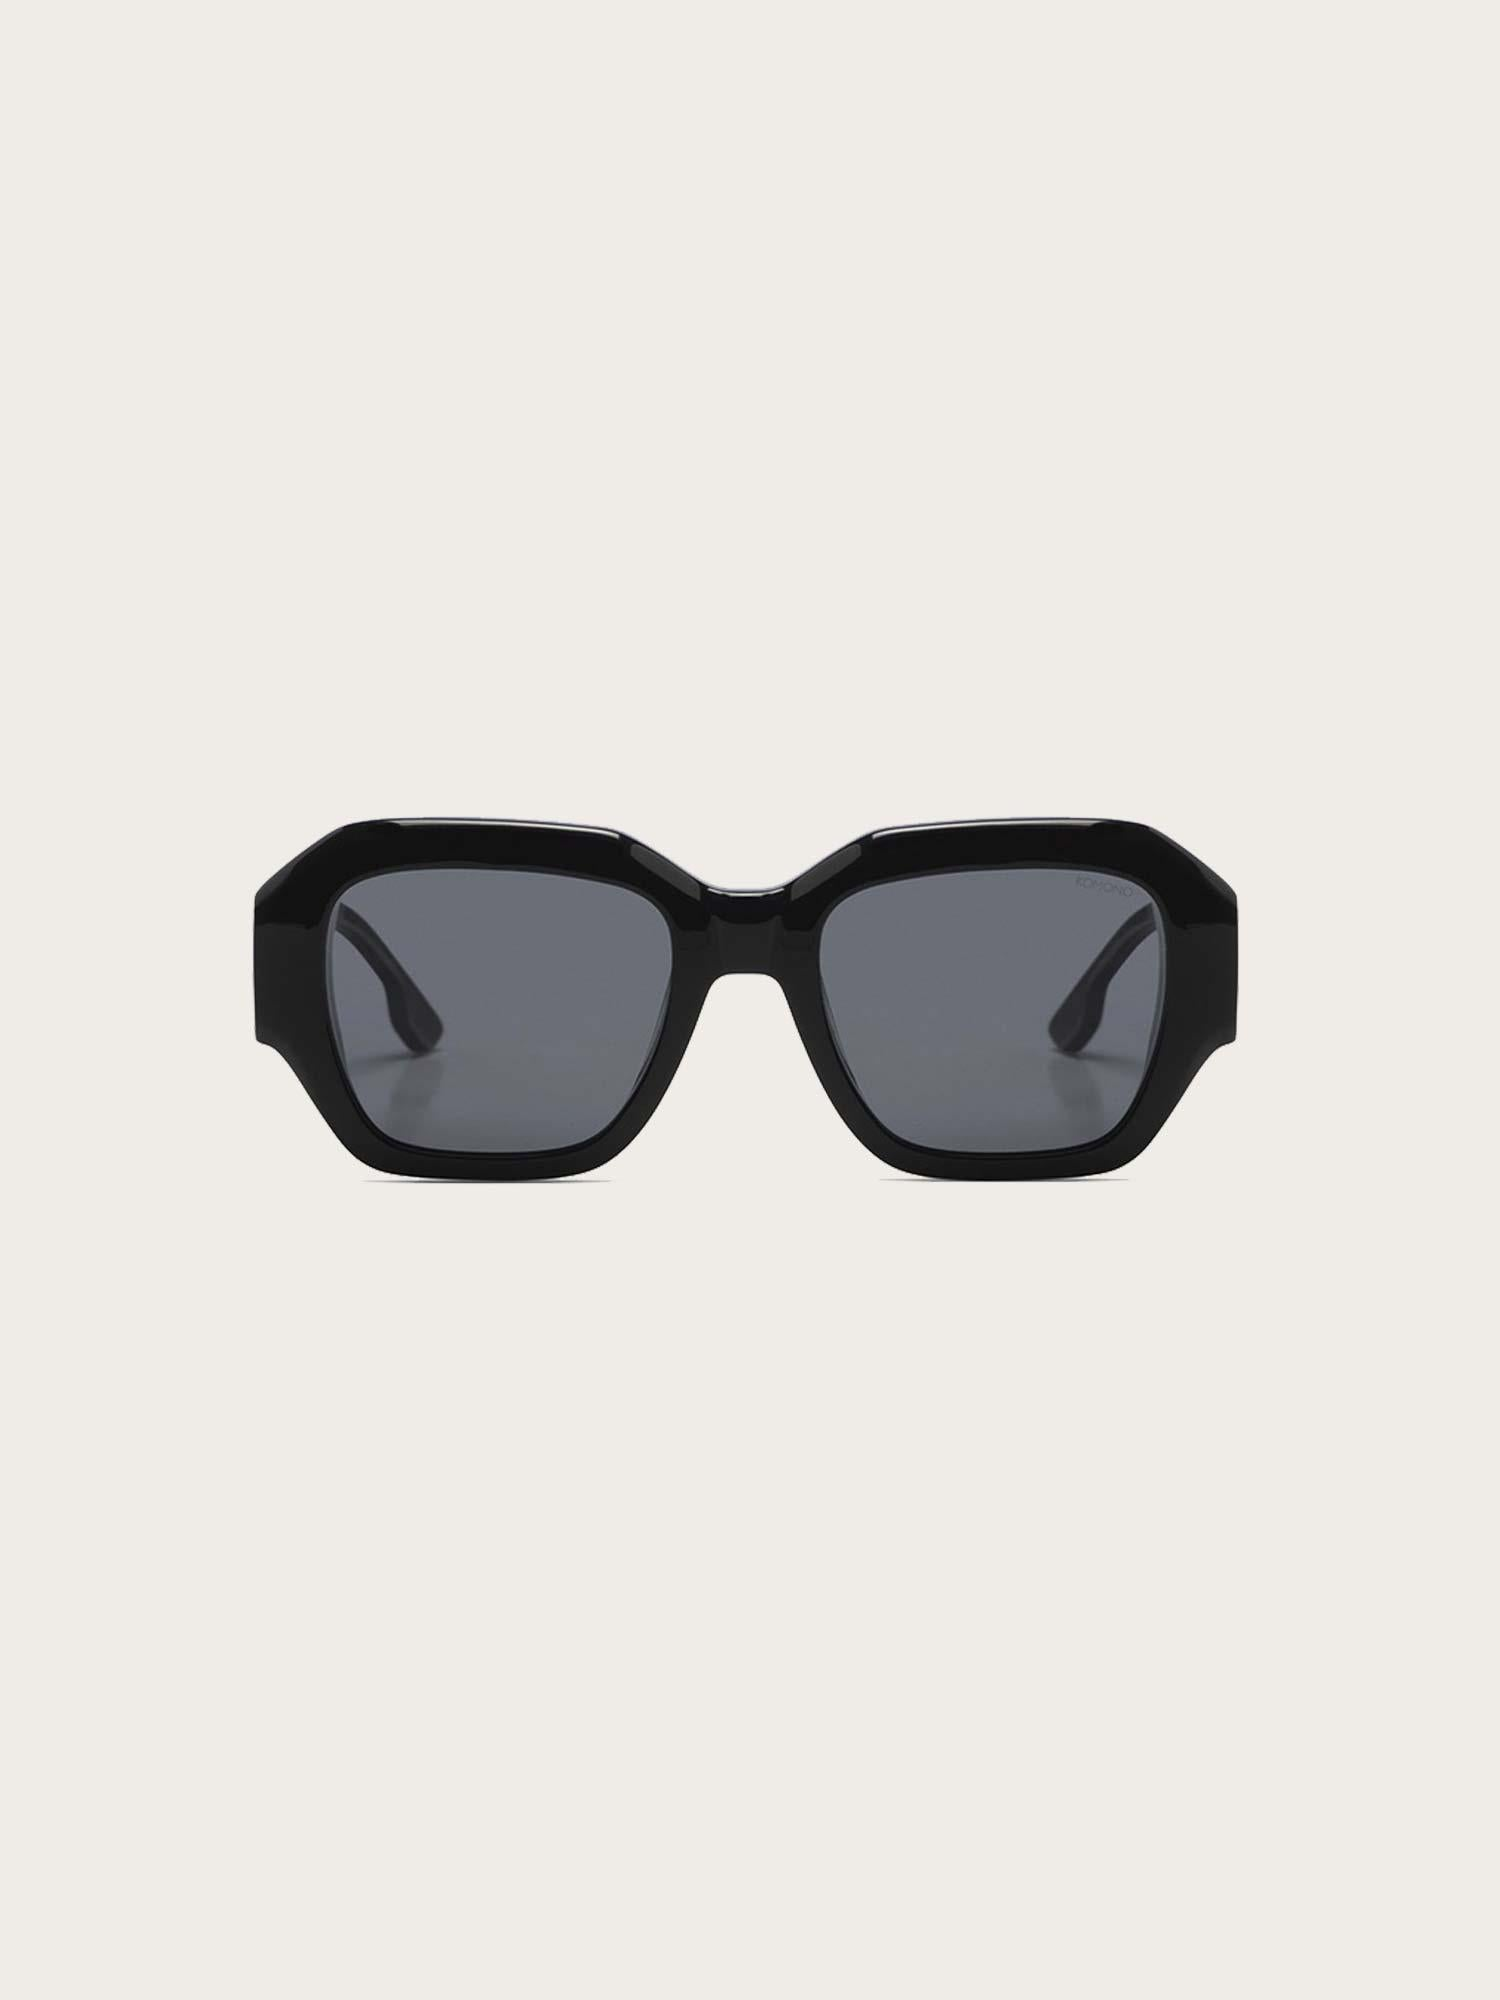 Lee Sunglasses Black